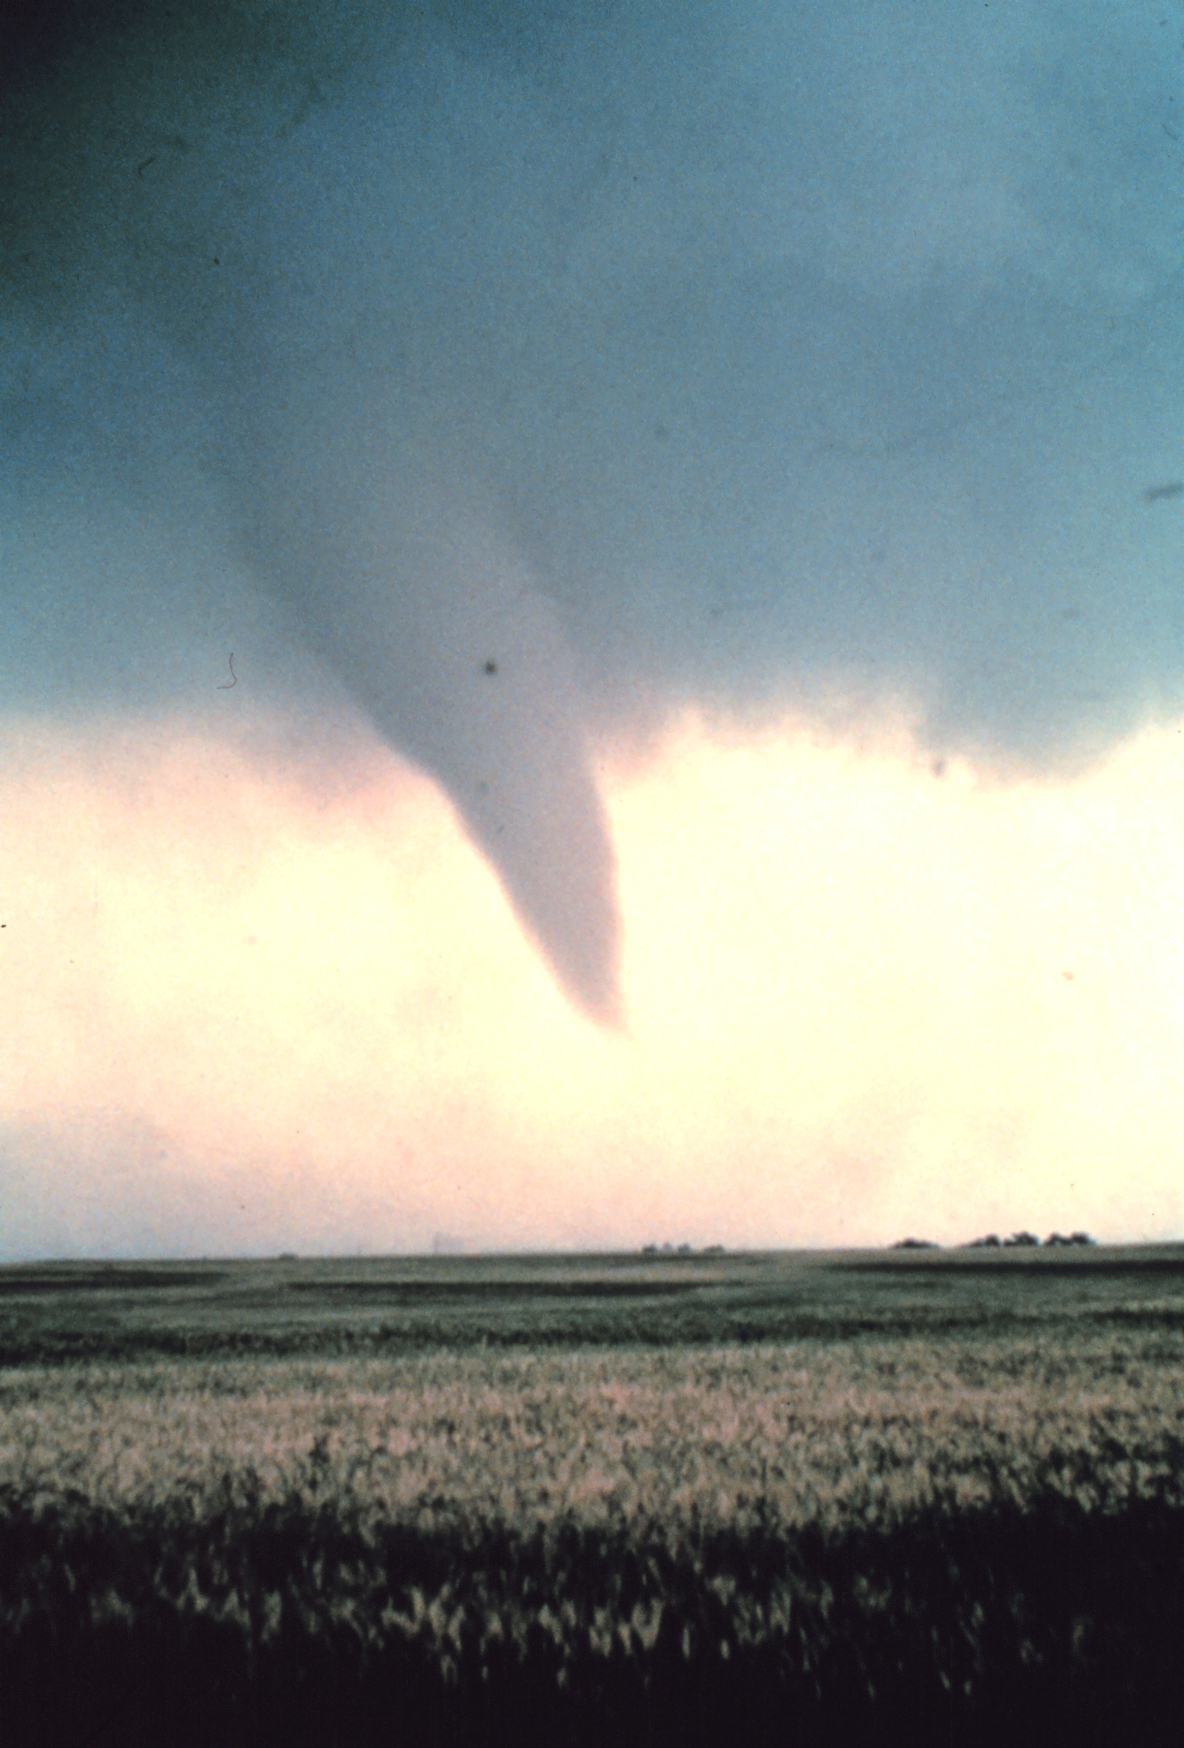 File:Tornado at beginning of life - NOAA.jpg - Wikimedia ...